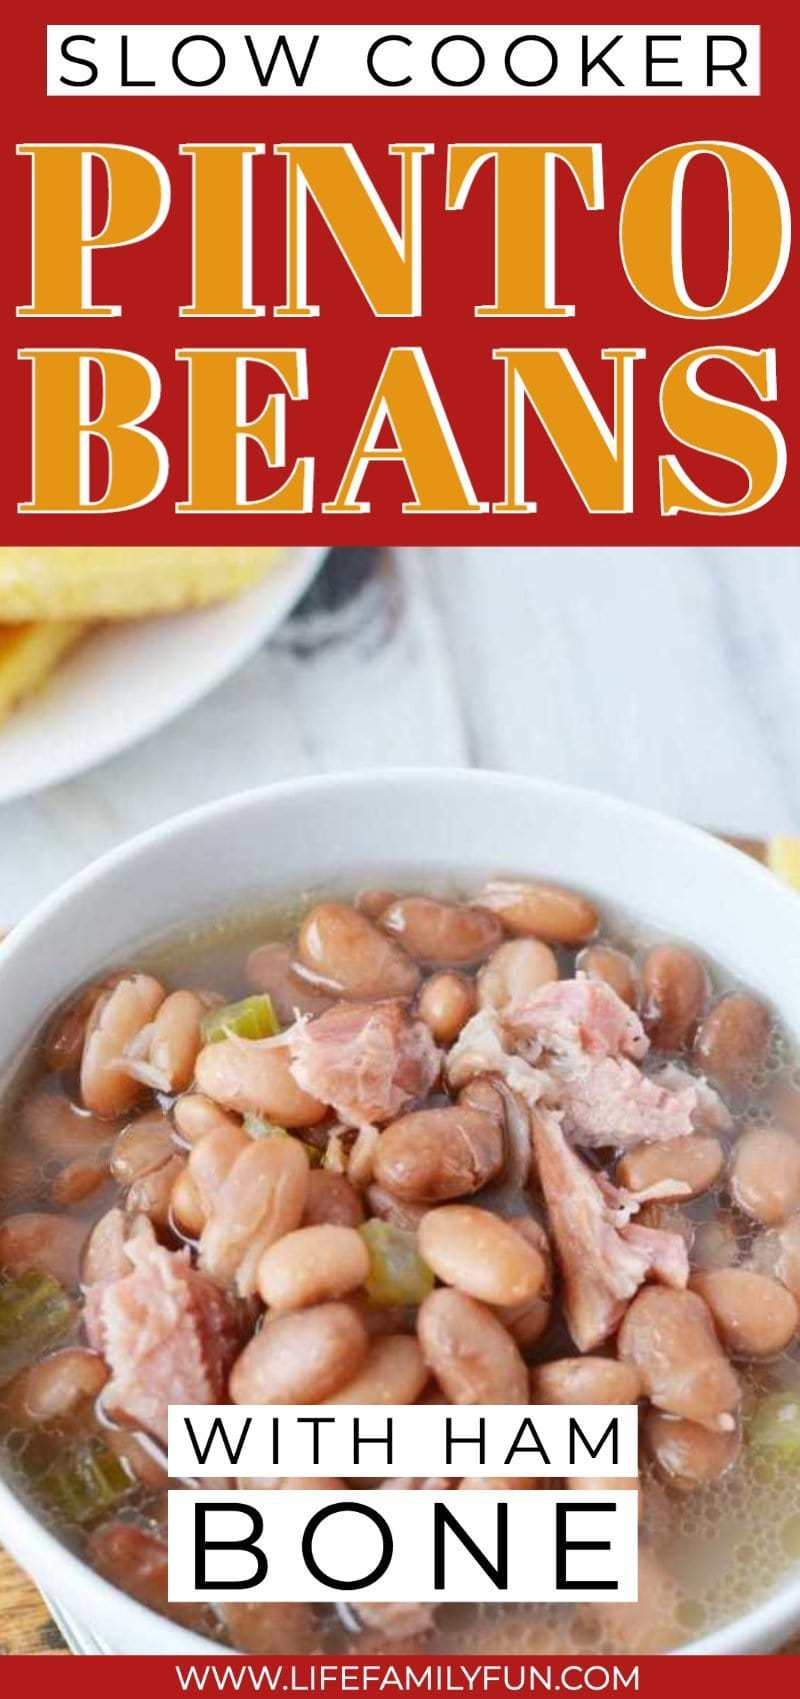 Slow Cooker Pinto Beans